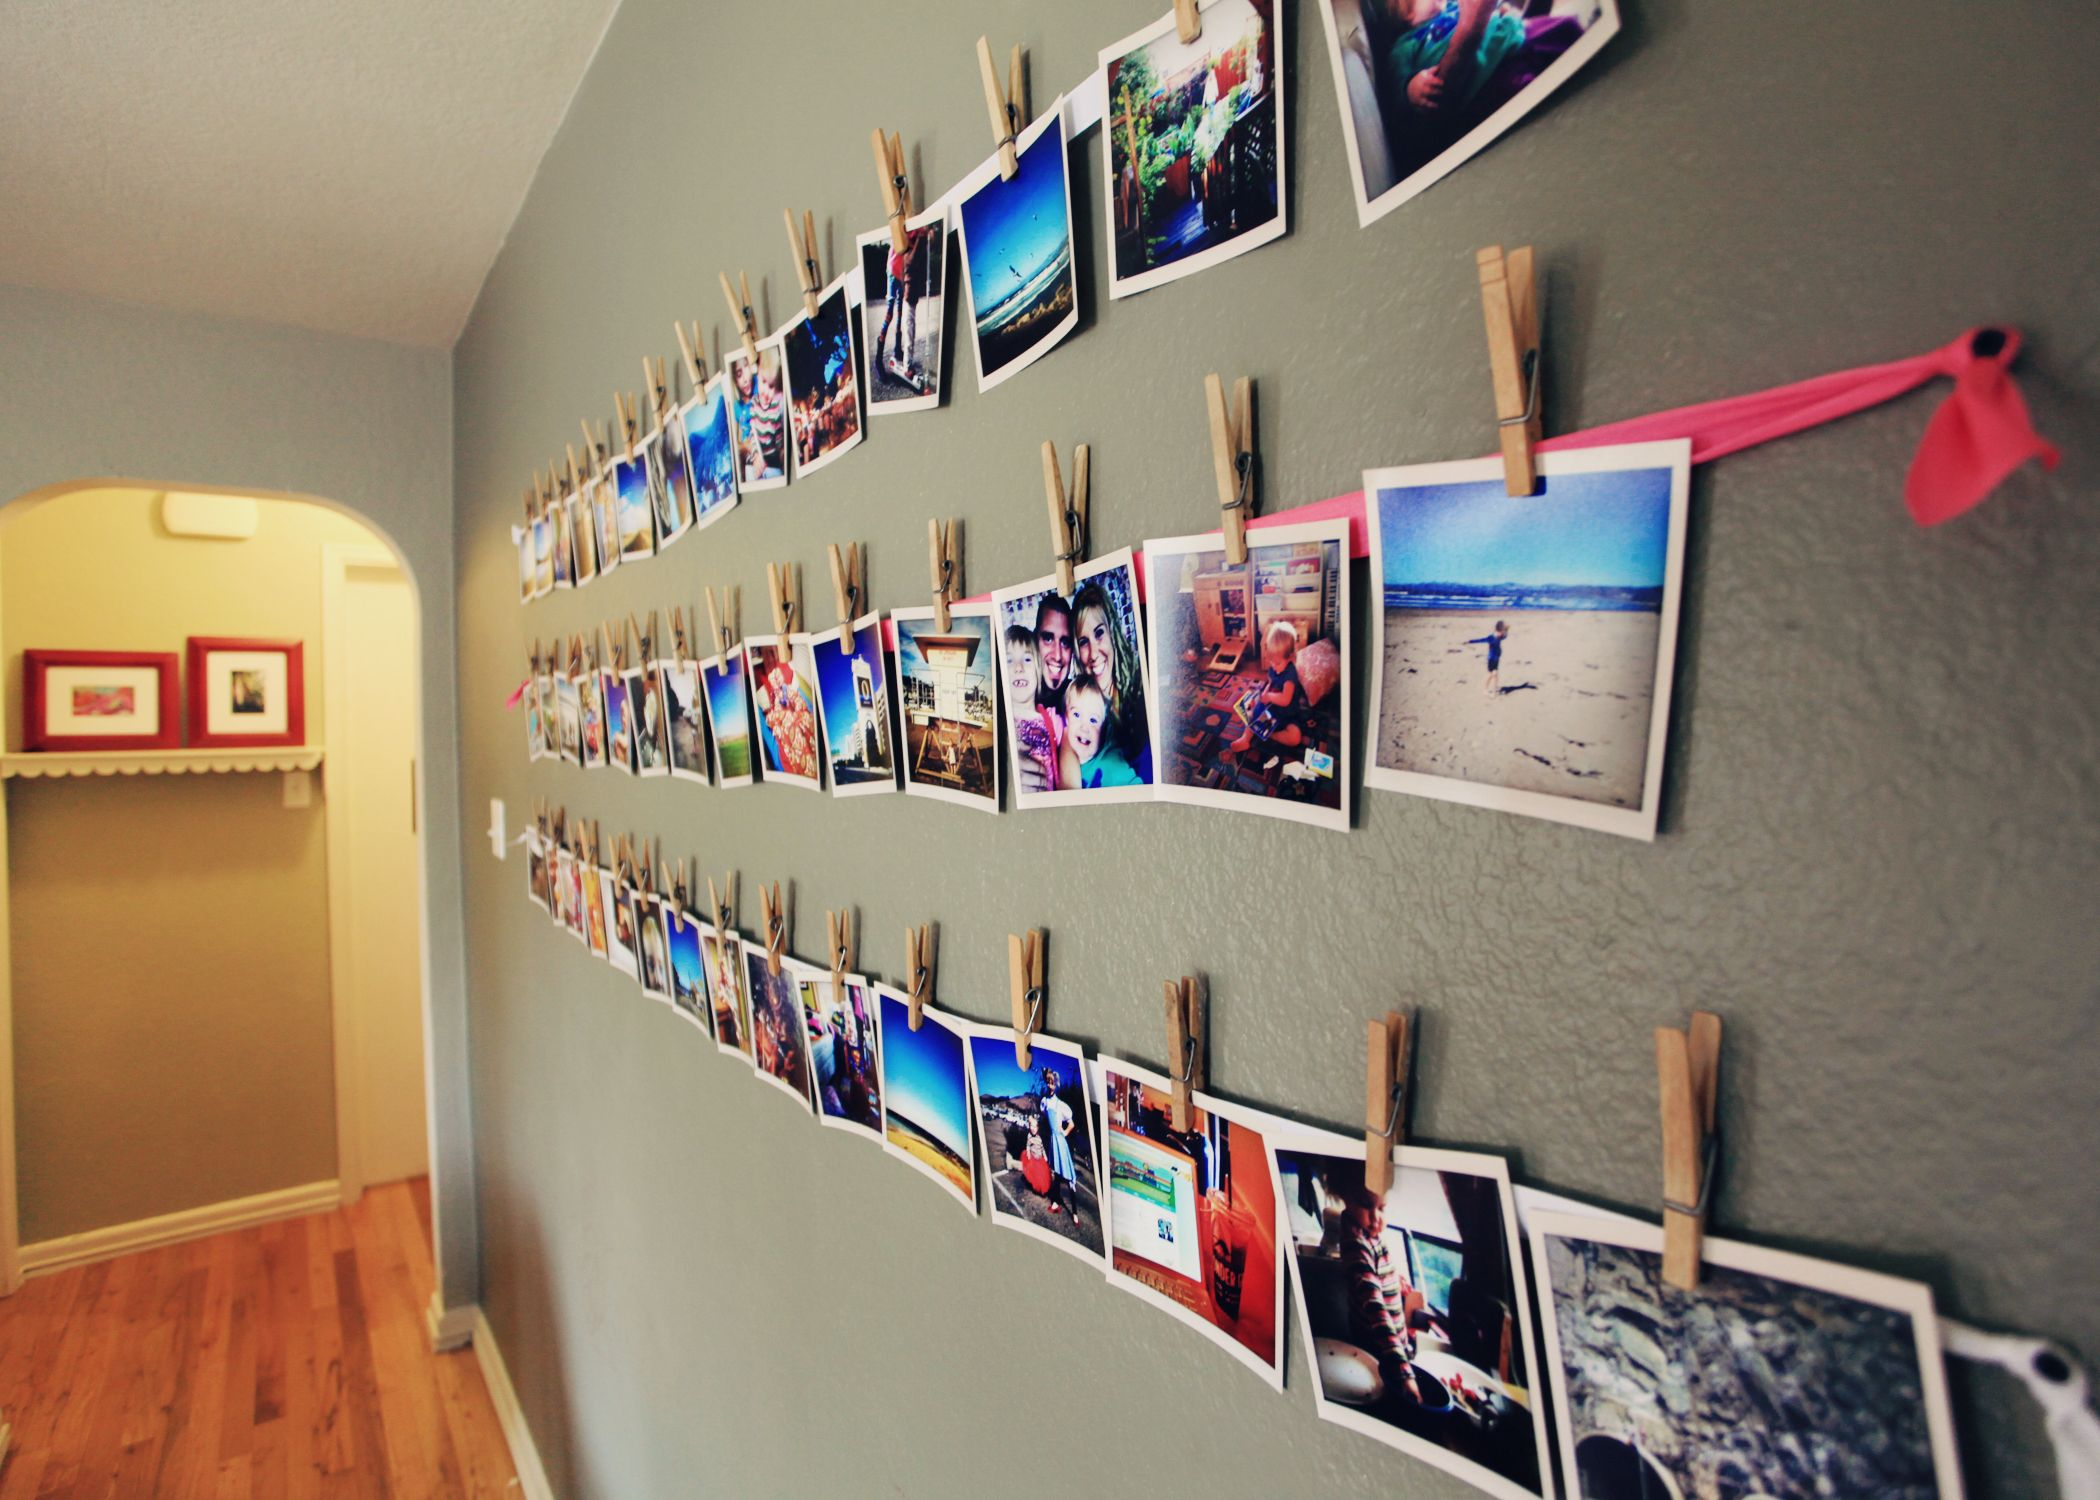 Best Ways to Decorate Your College Room! | Pictures, Hooks and ...